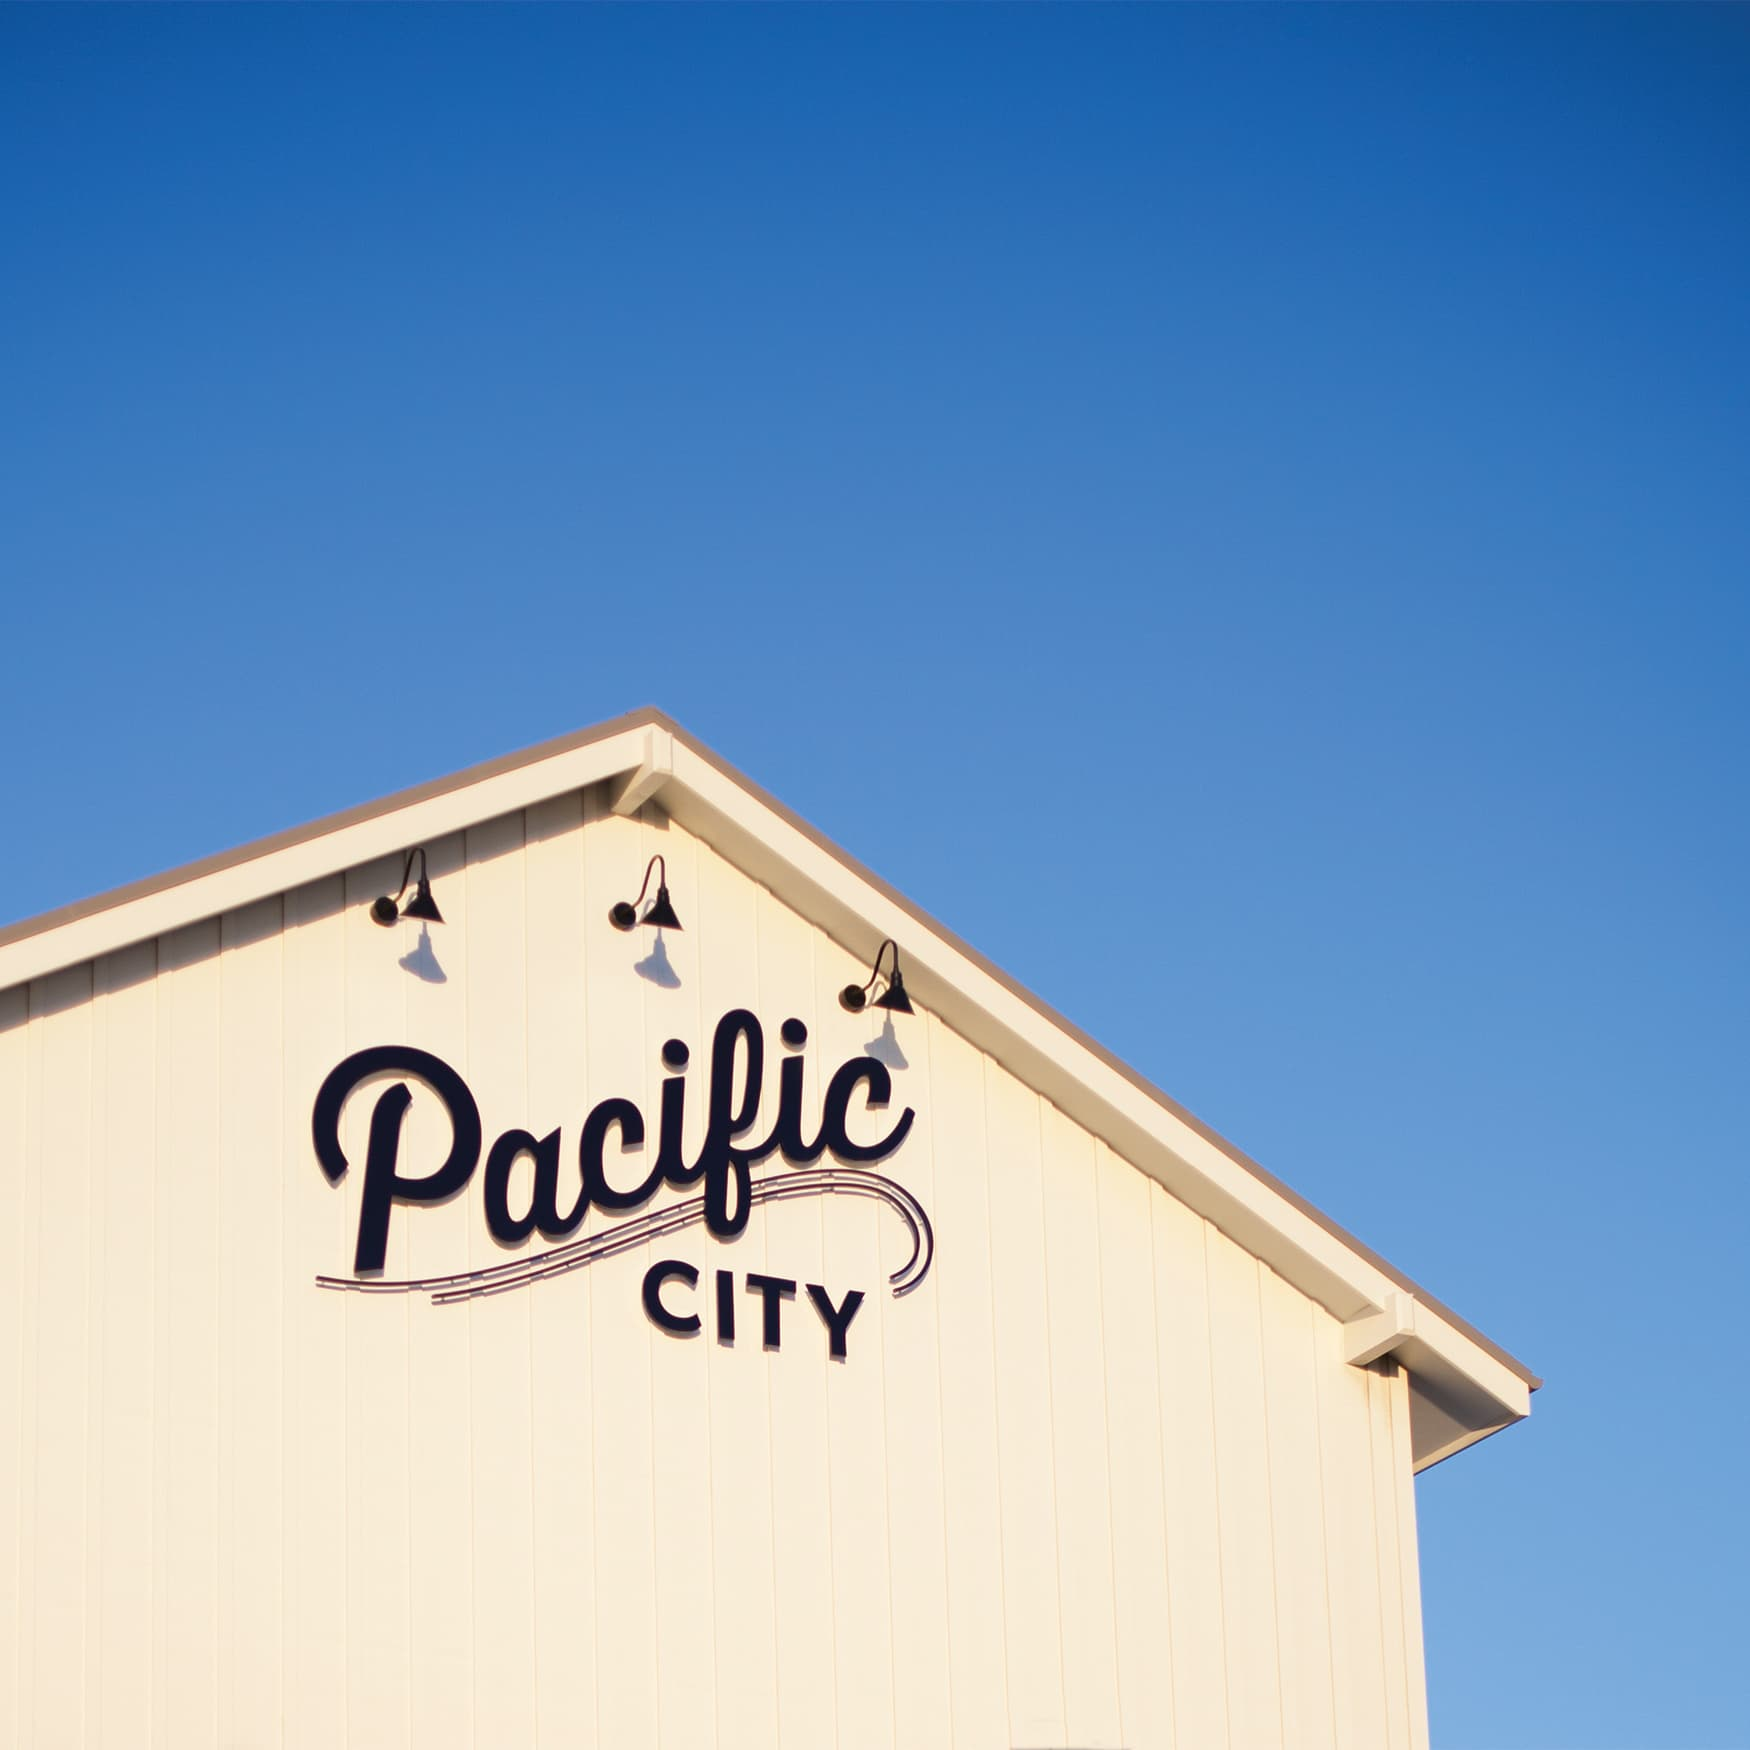 Pacific City branded signage on project building contrasts against the blue sky.